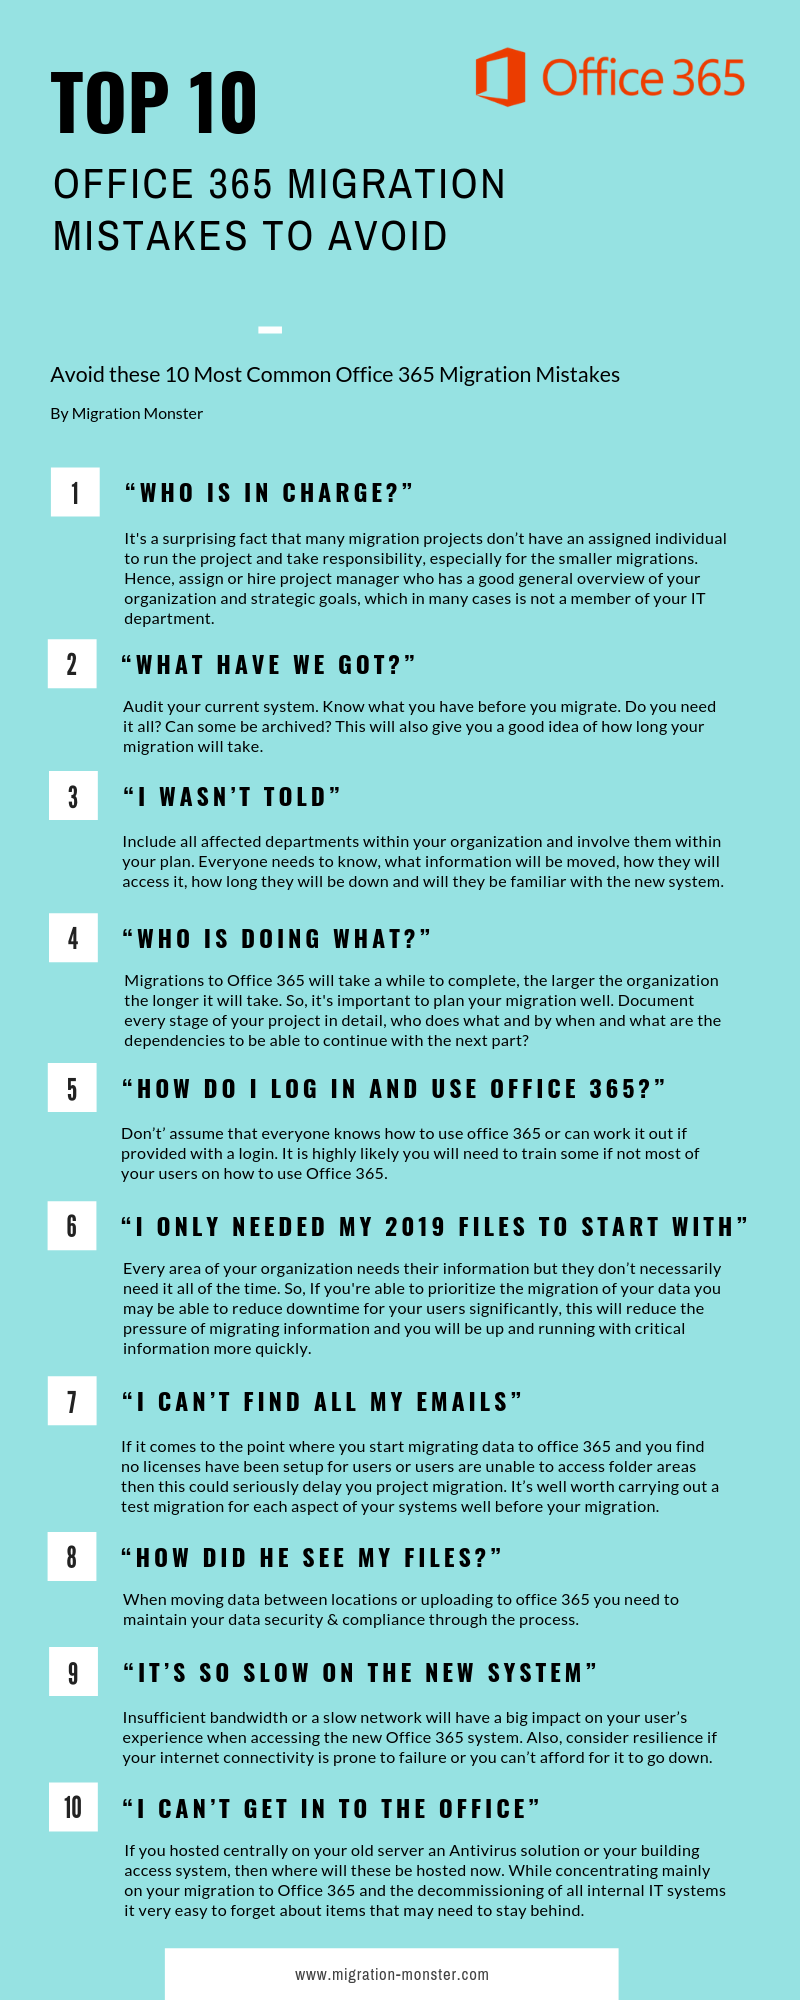 Avoid-these-10-Most-Common-Office-365-Migration-Mistakes-infographic-plaza